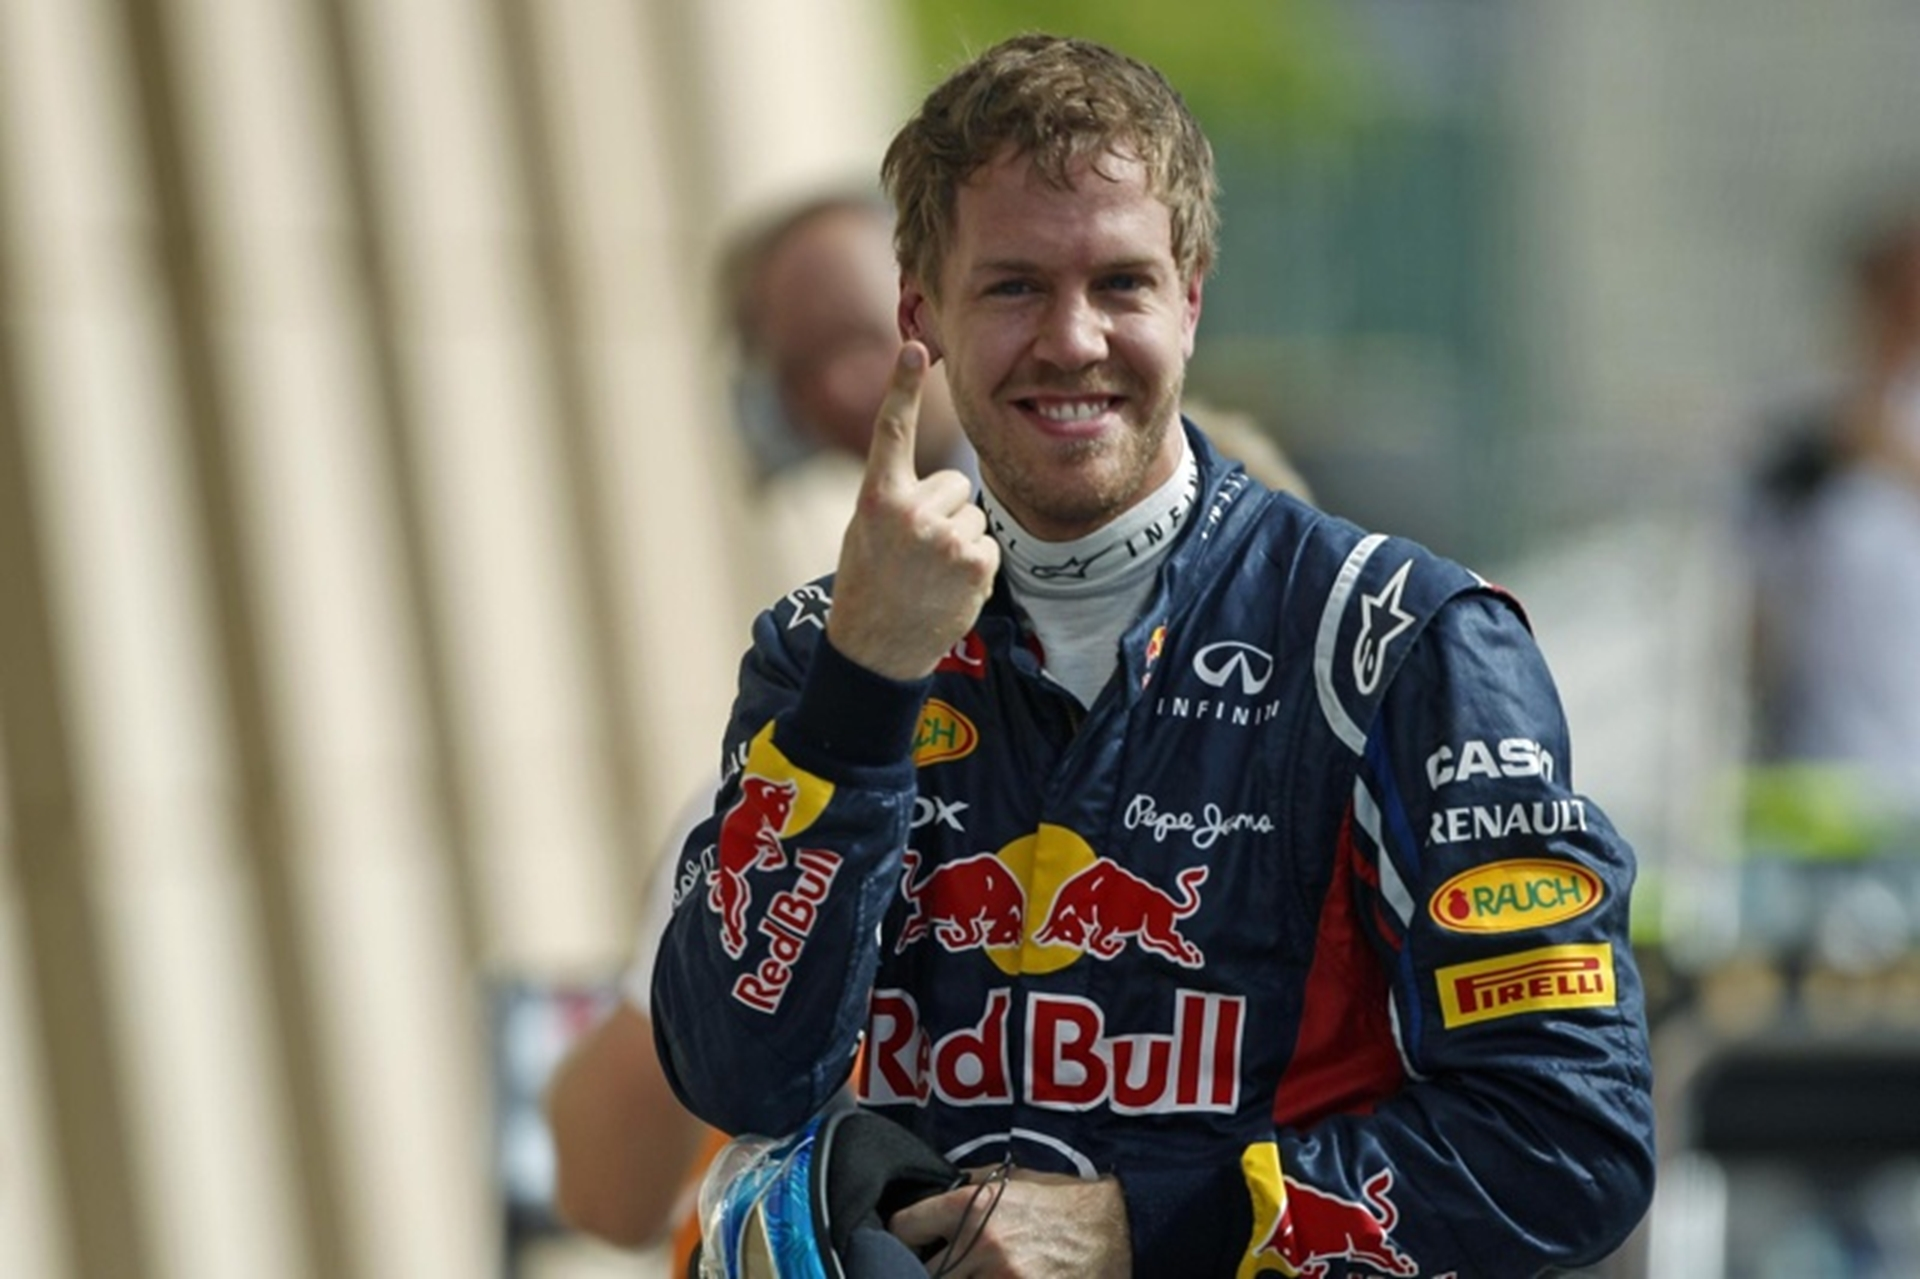 Sebastian Vettel wins the Bahrain Grand Prix